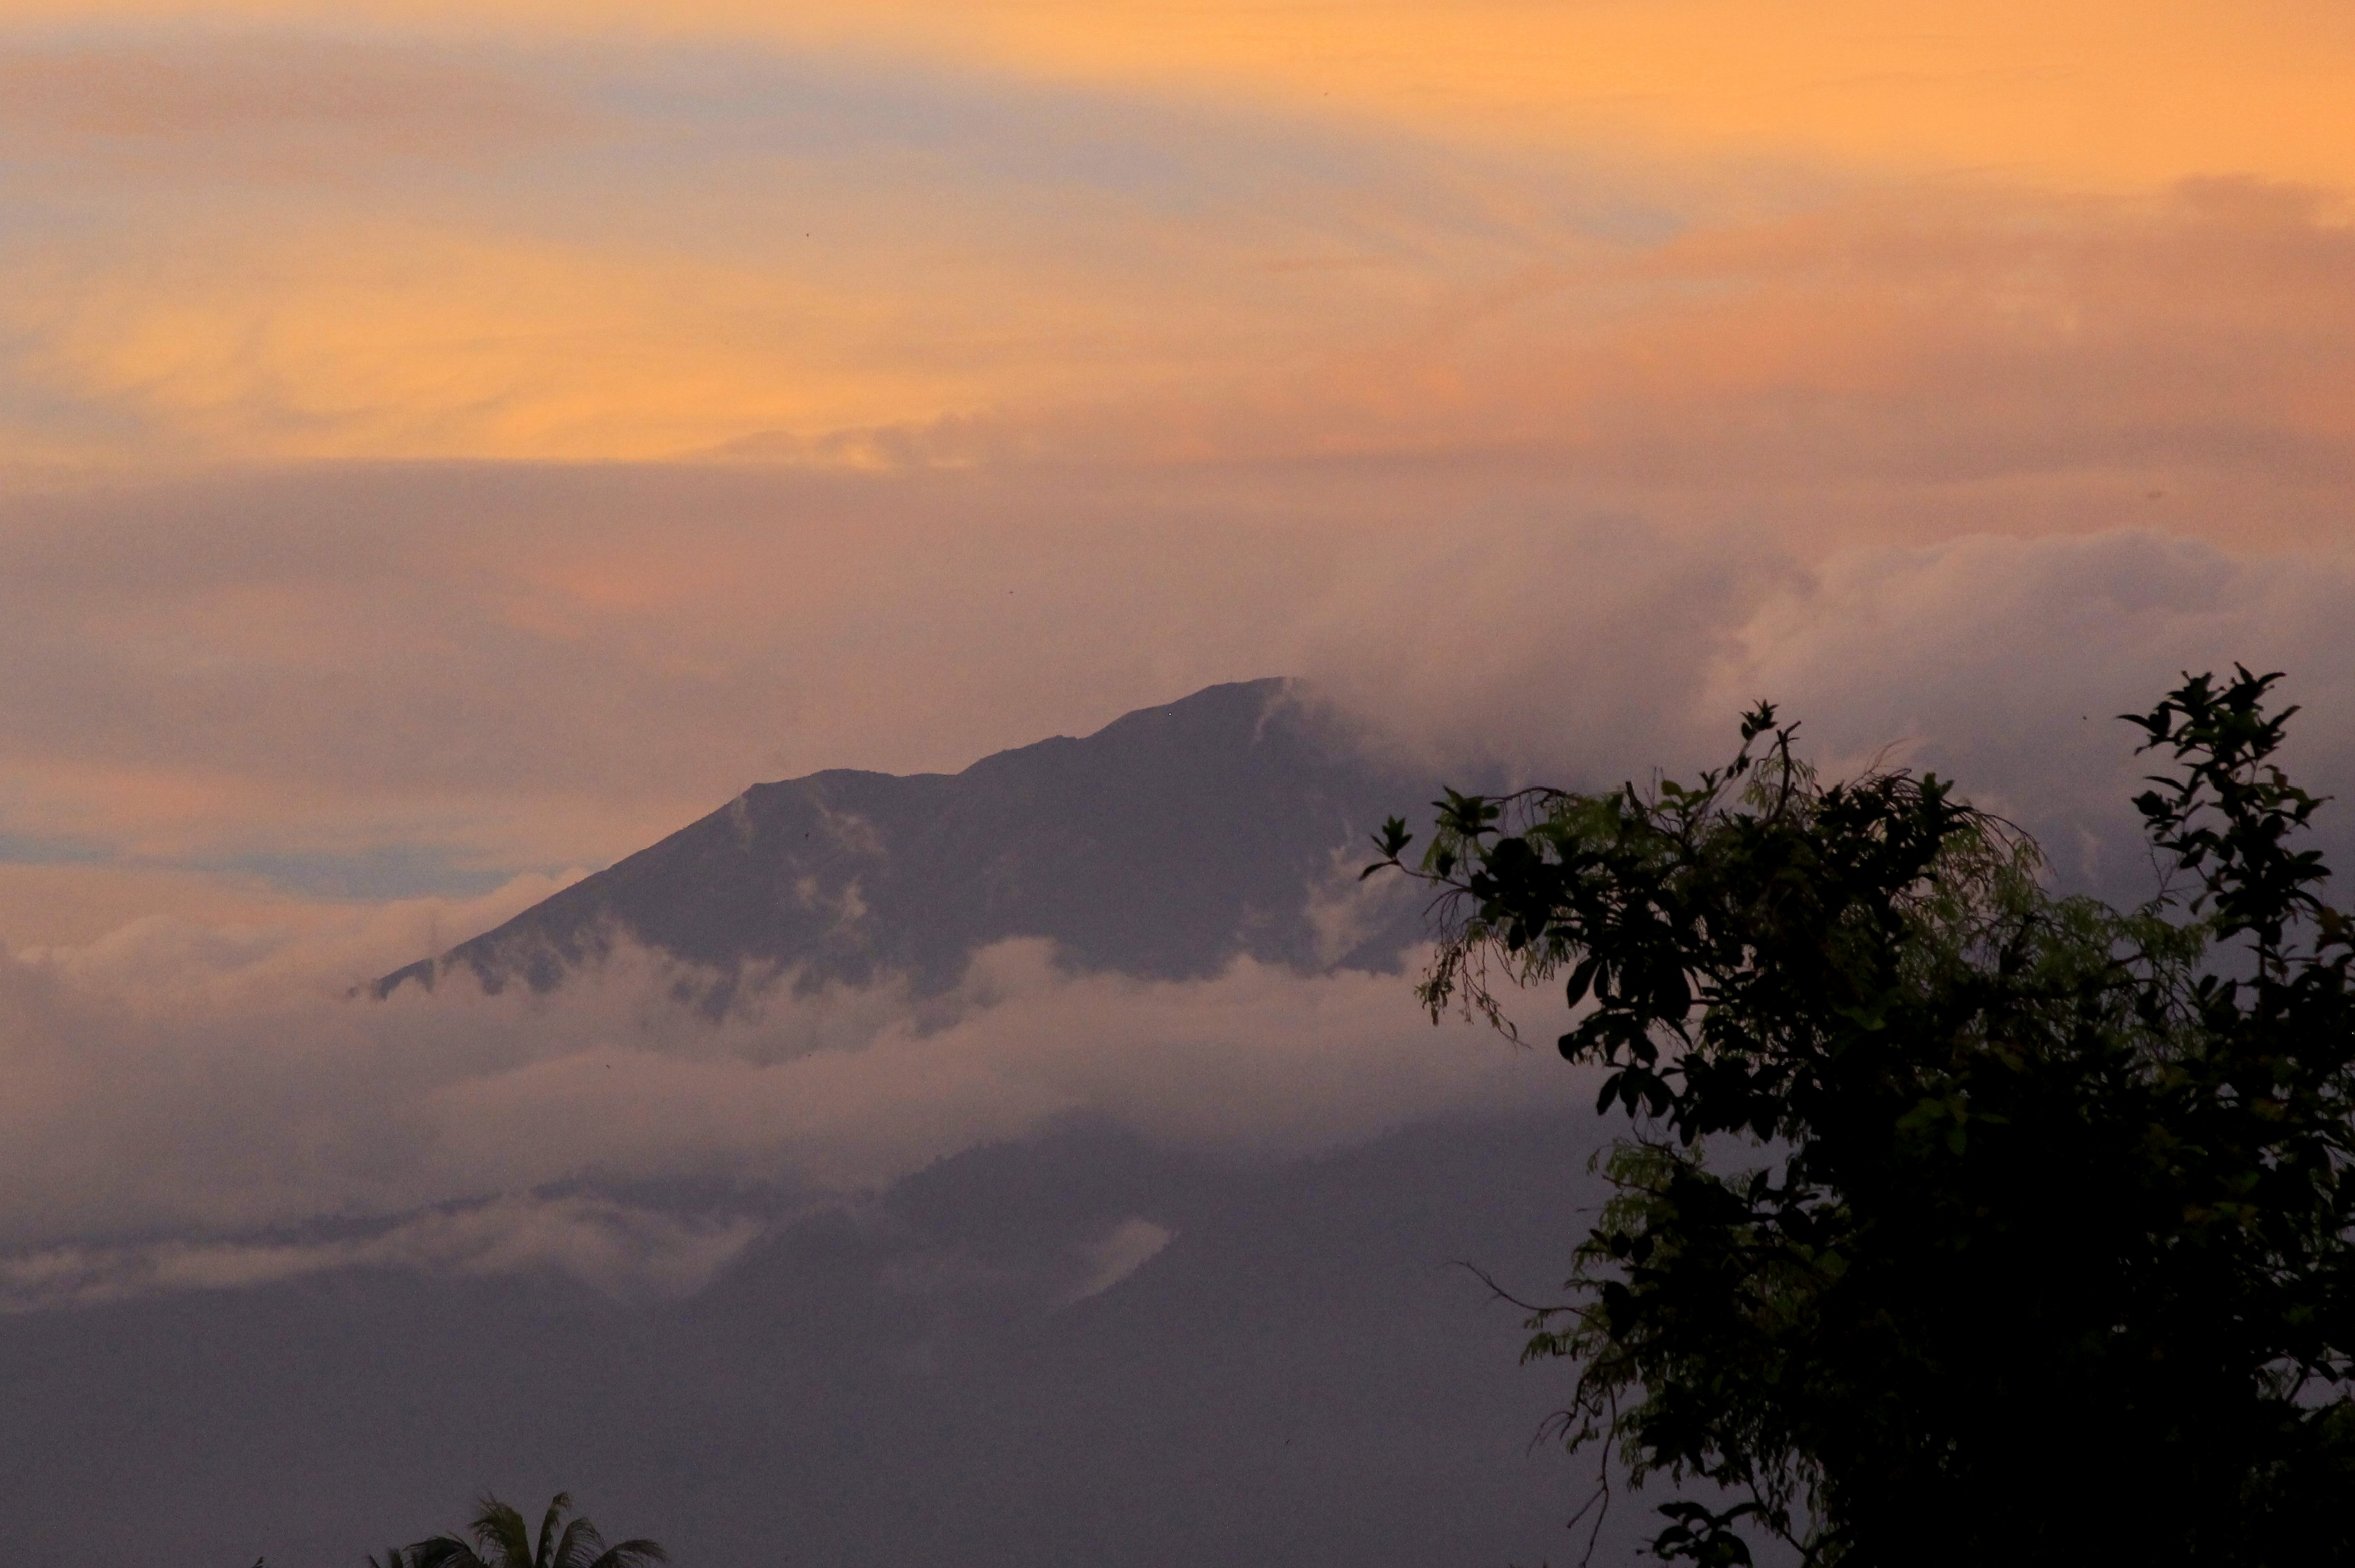 The view of Mount Rinjani during sunset